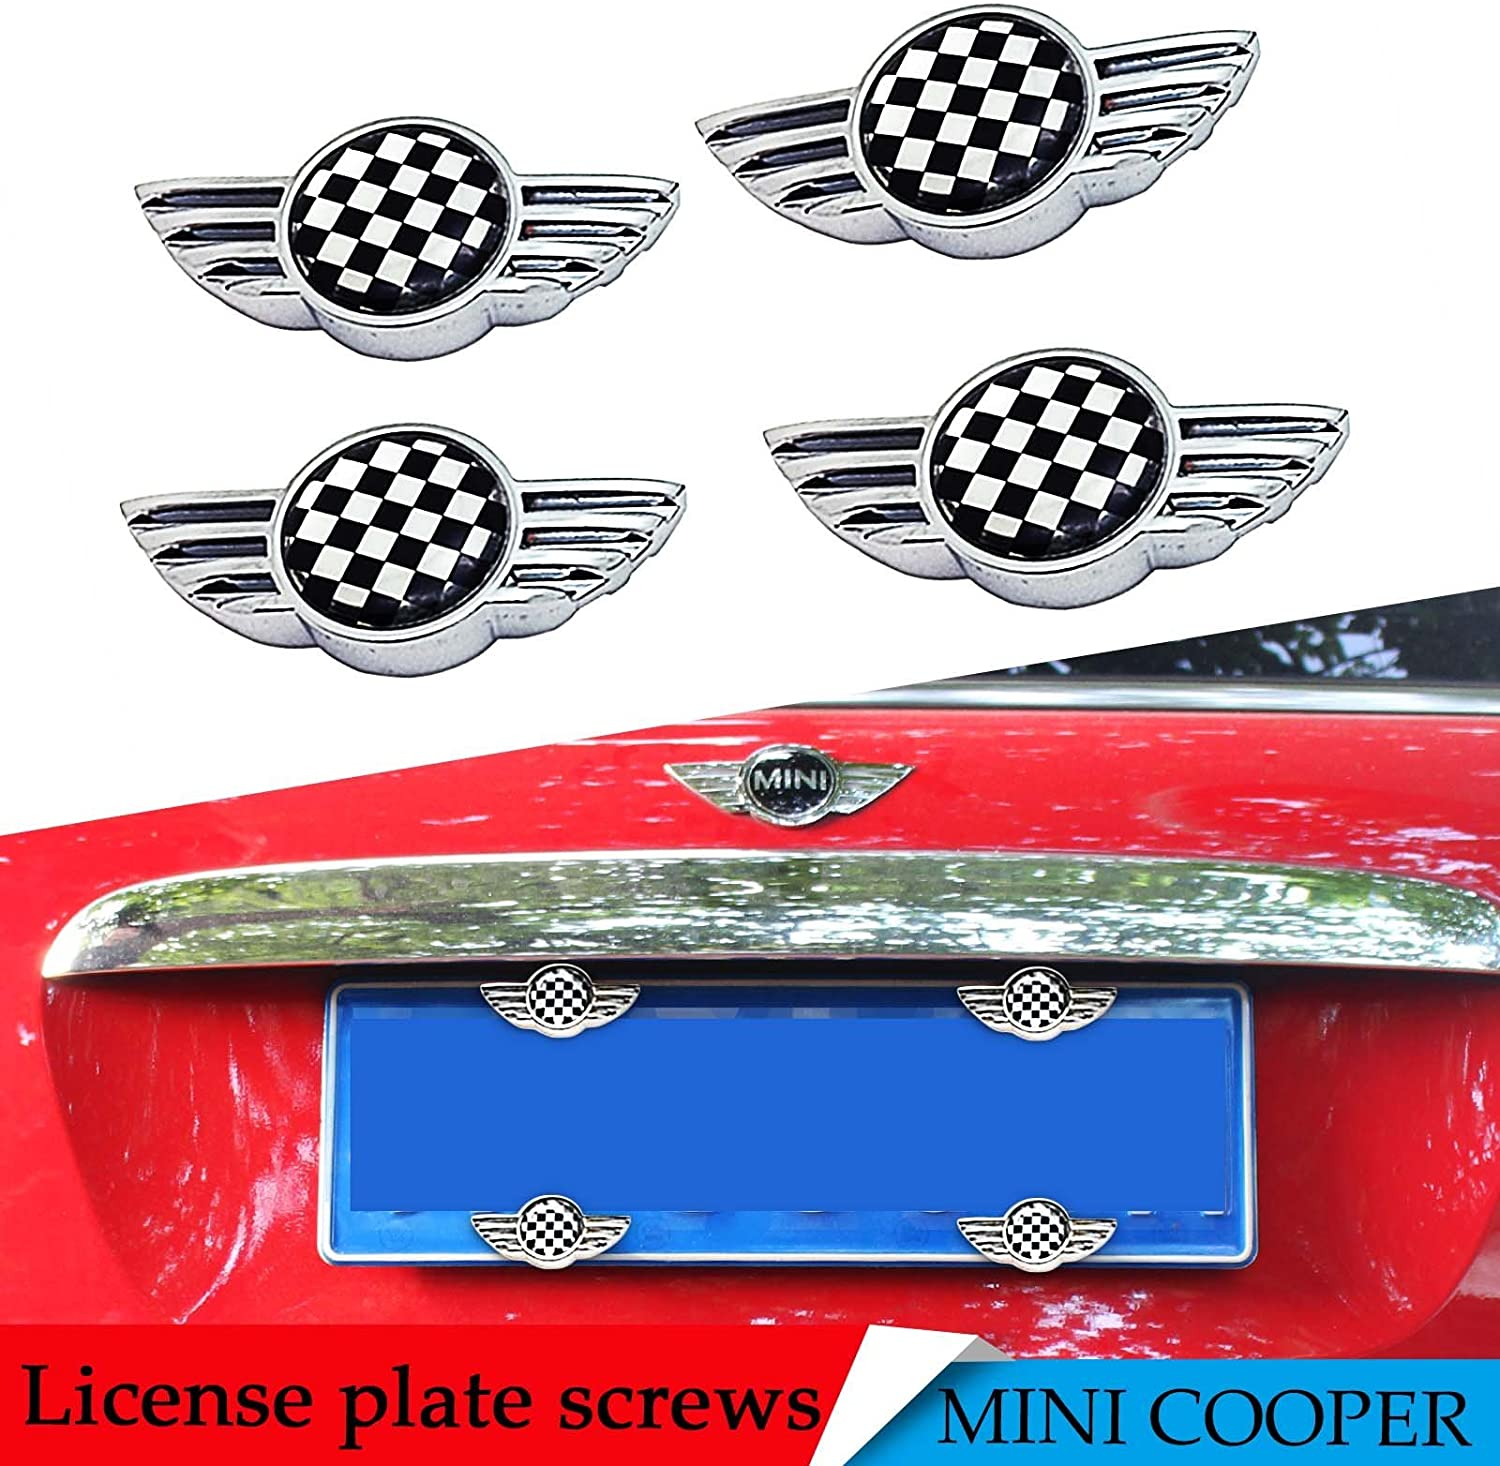 Checkered YaaGoo License Plate Frame Bolt Screws Fasteners with Safety Screw Caps Fly Wing Design for Mini Cooper Universal Fit